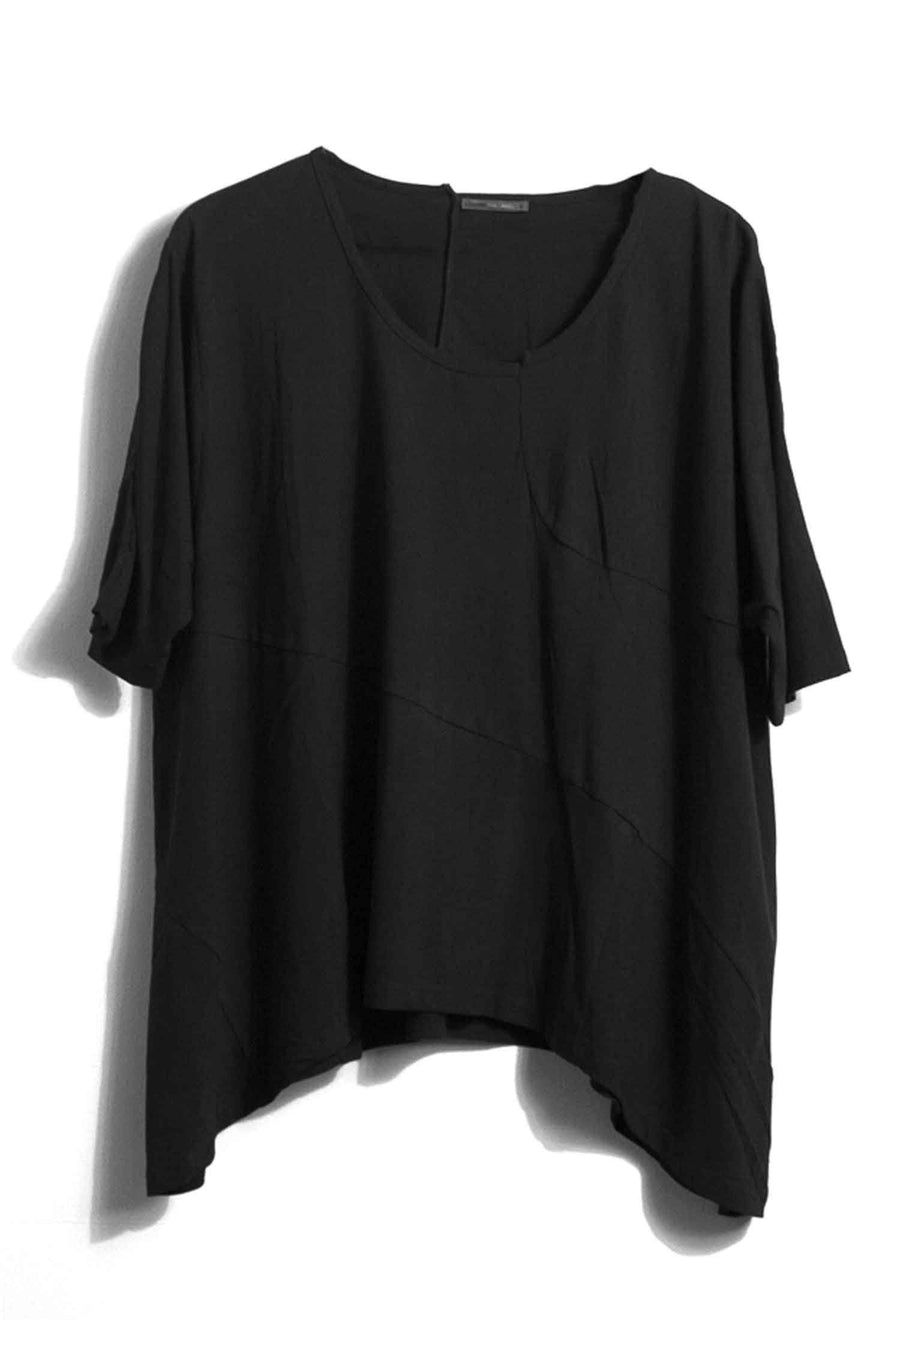 Etang Tunic in Black by Lounge Frockaholics.com